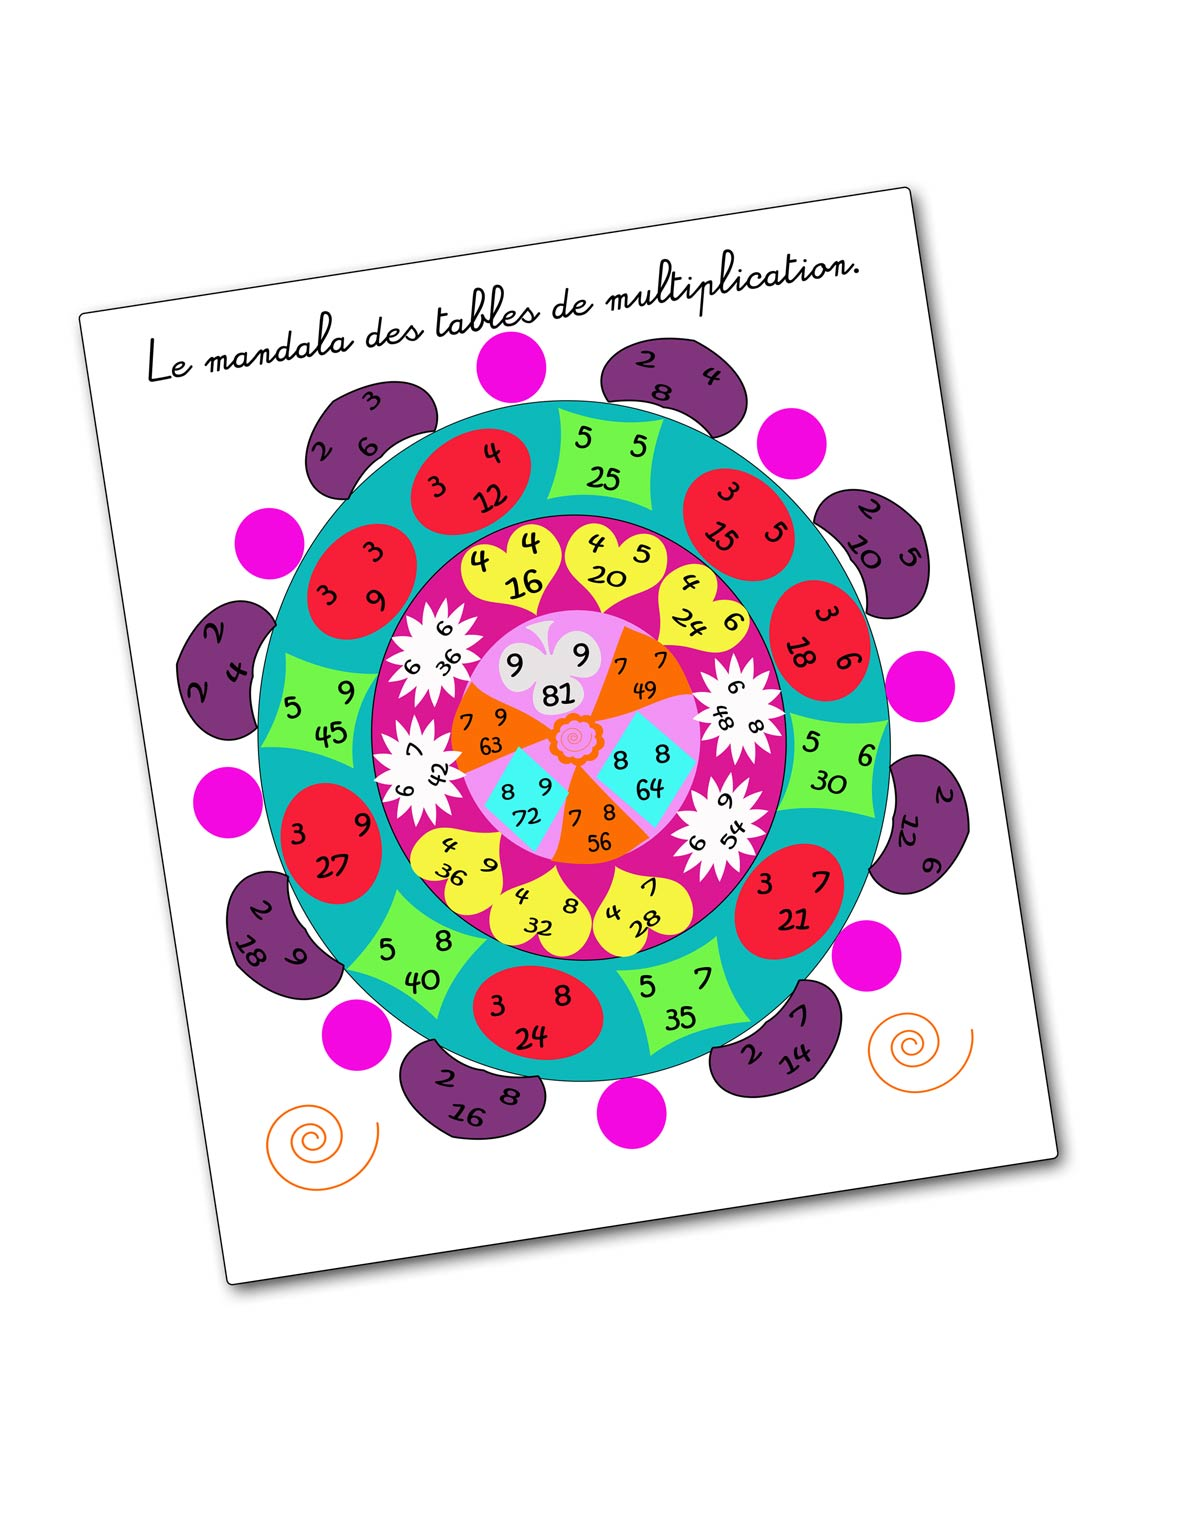 Mandala des tables de multiplication un monde meilleur - Les table de multiplication de a ...